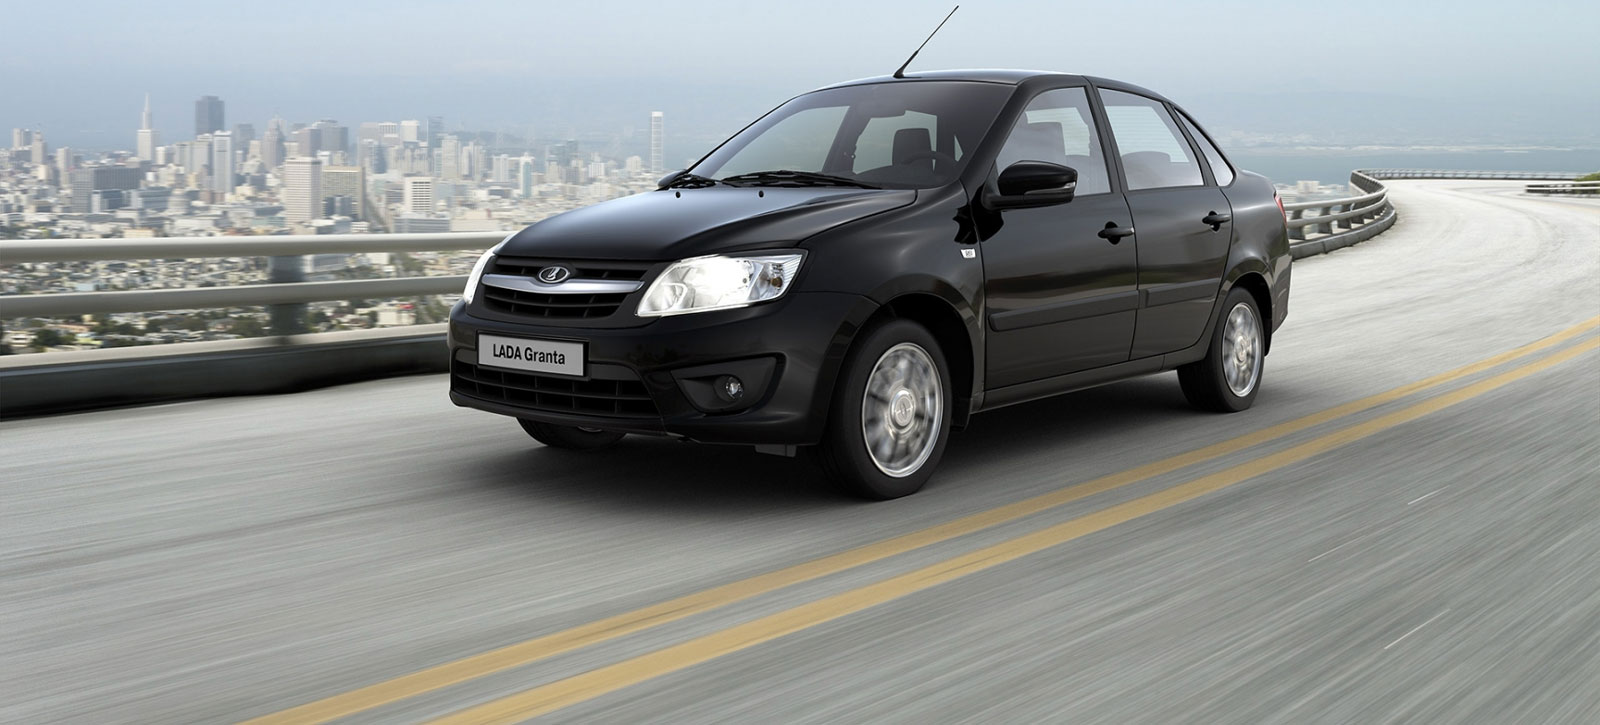 Find the LADA range on our local websites.